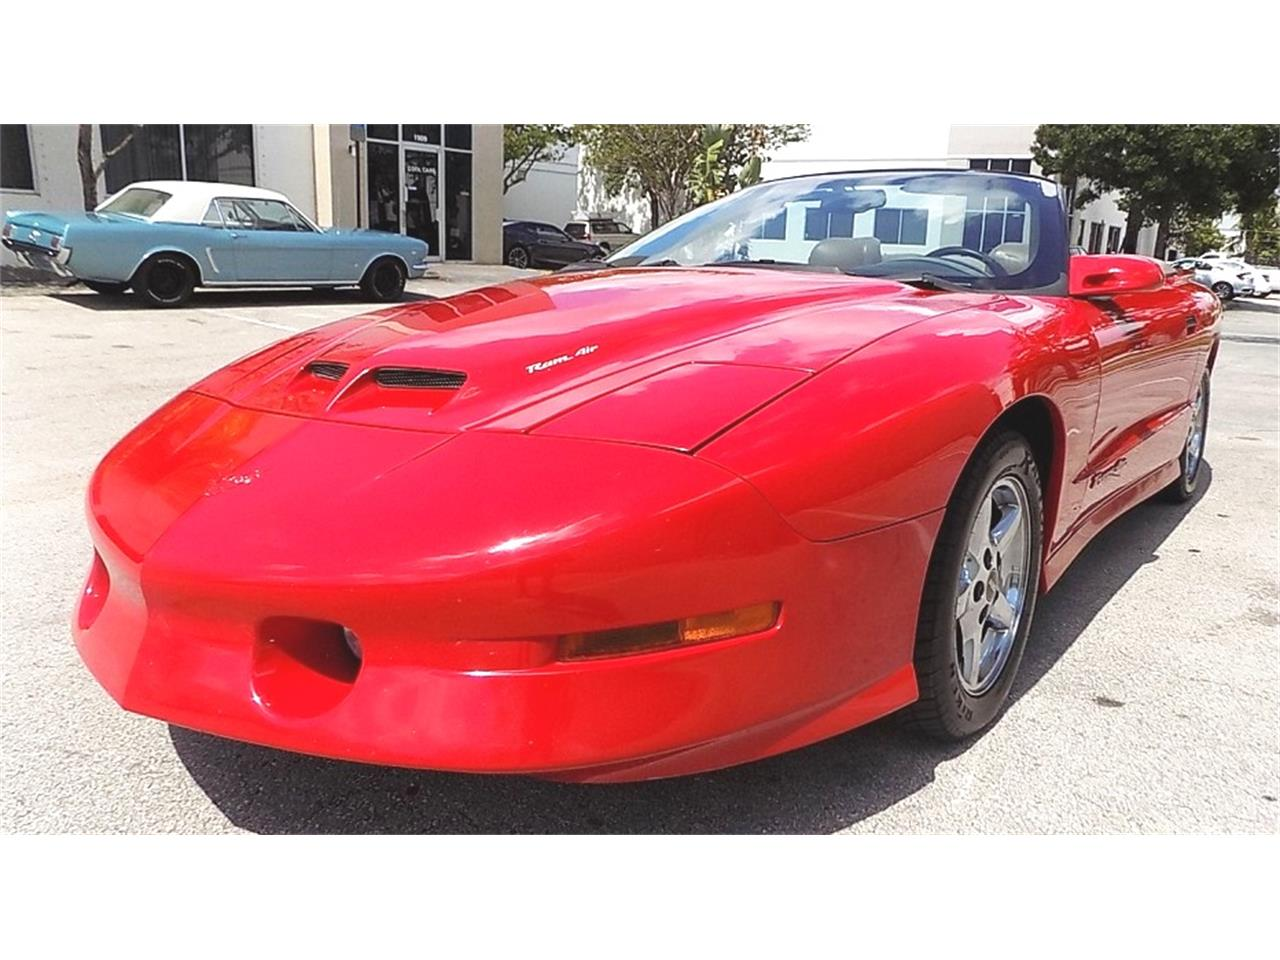 1997 Pontiac Firebird Trans Am WS6 (CC-1223797) for sale in POMPANO BEACH, Florida